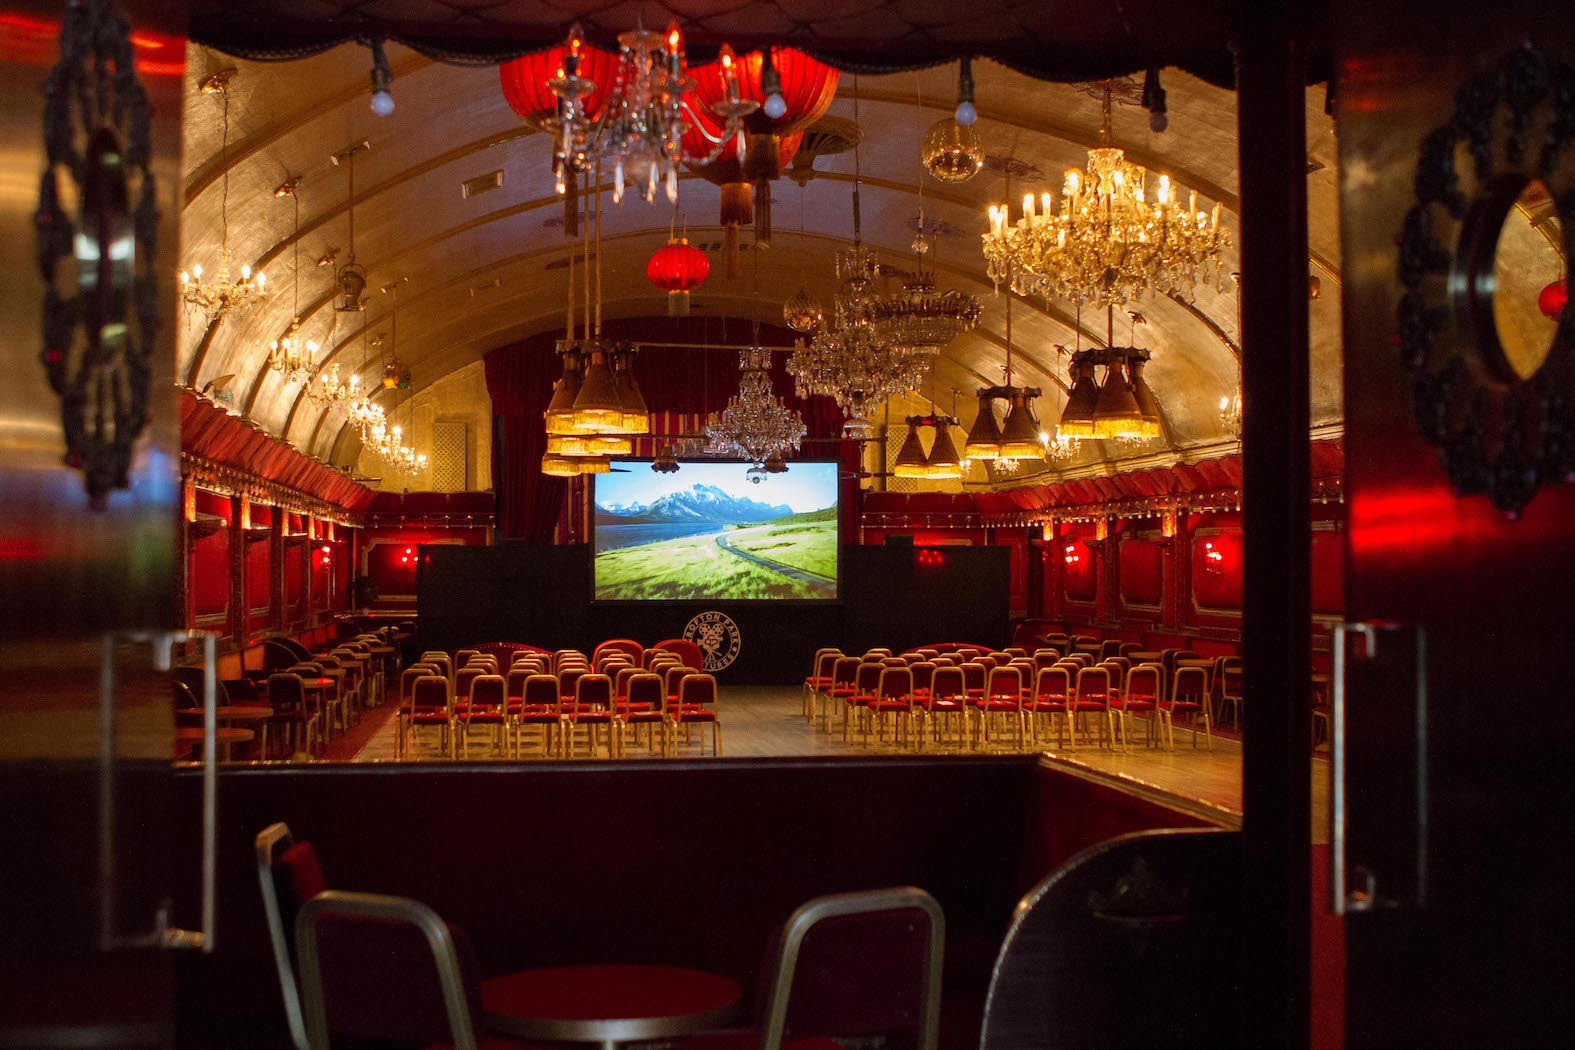 The Notebook - Valentines Pop up Cinema